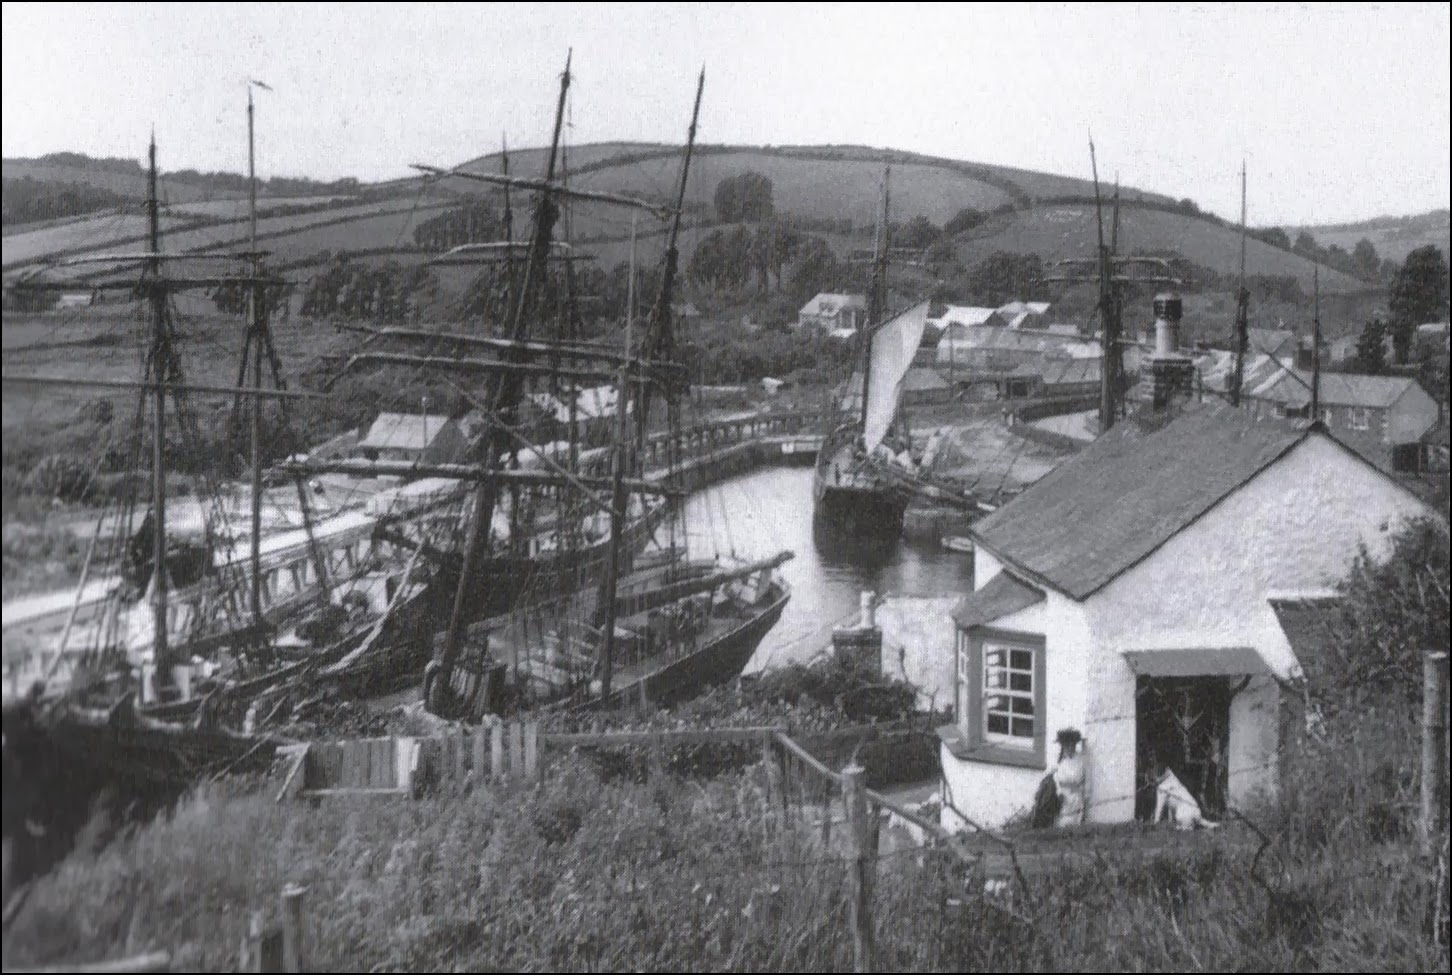 1900 photo of Pentewan, Cornwall